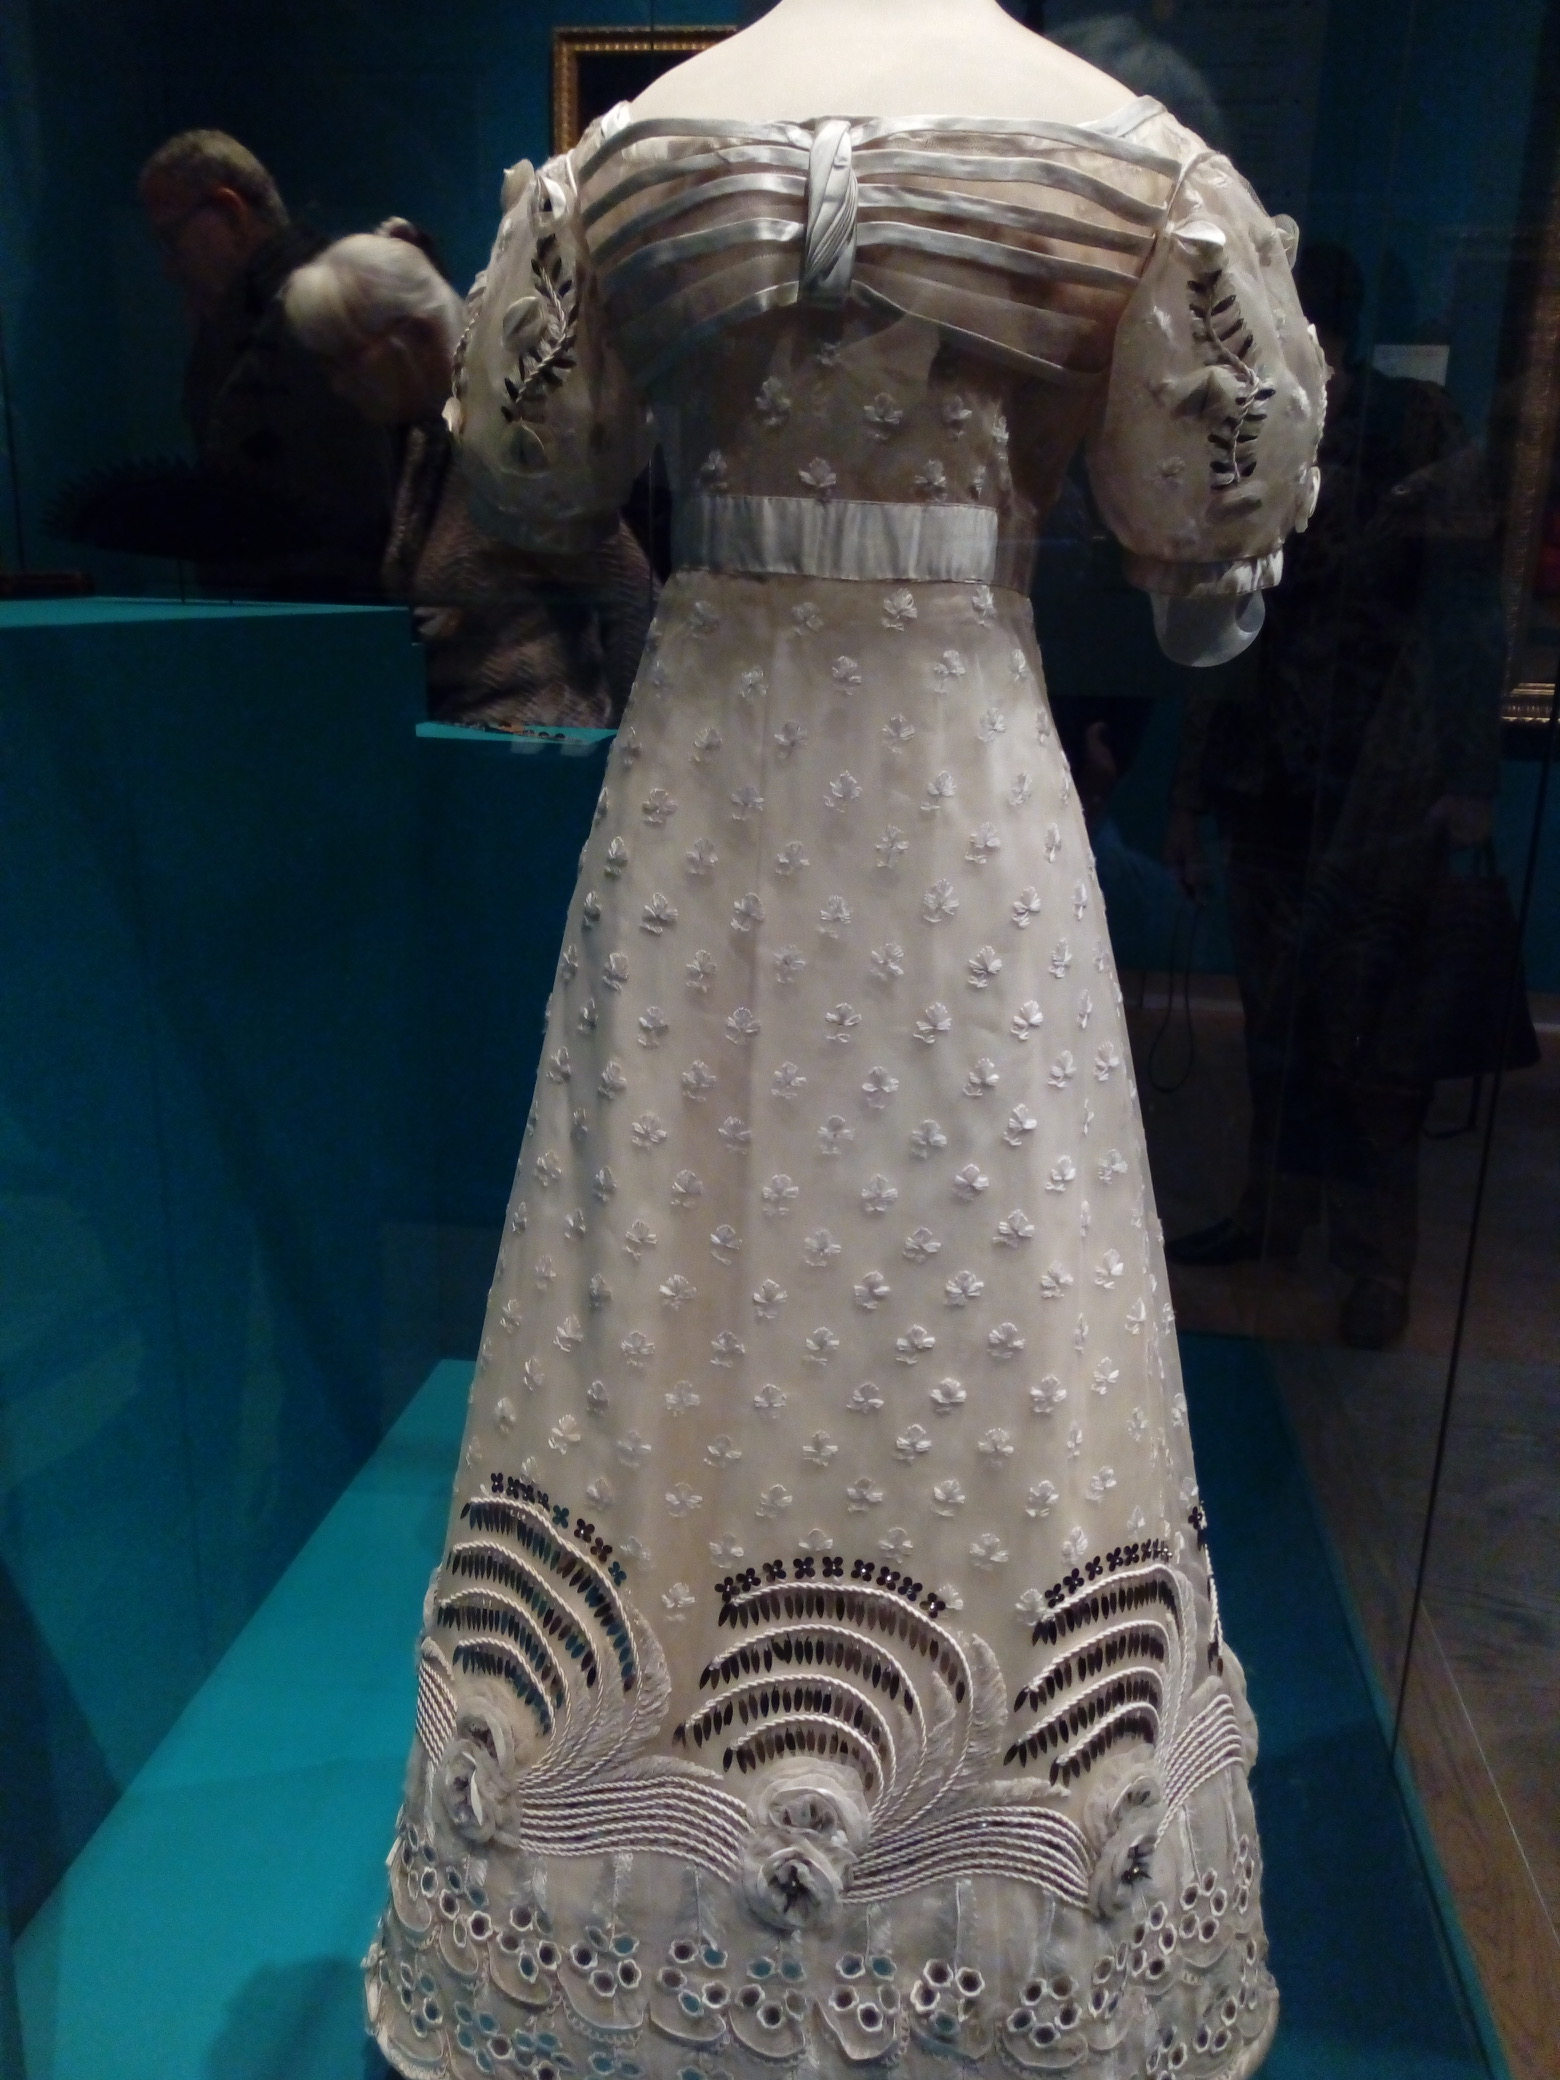 Ball gown: 1826-27, St. Petersburg. Silver gauze, silk, satin, steel sequins.